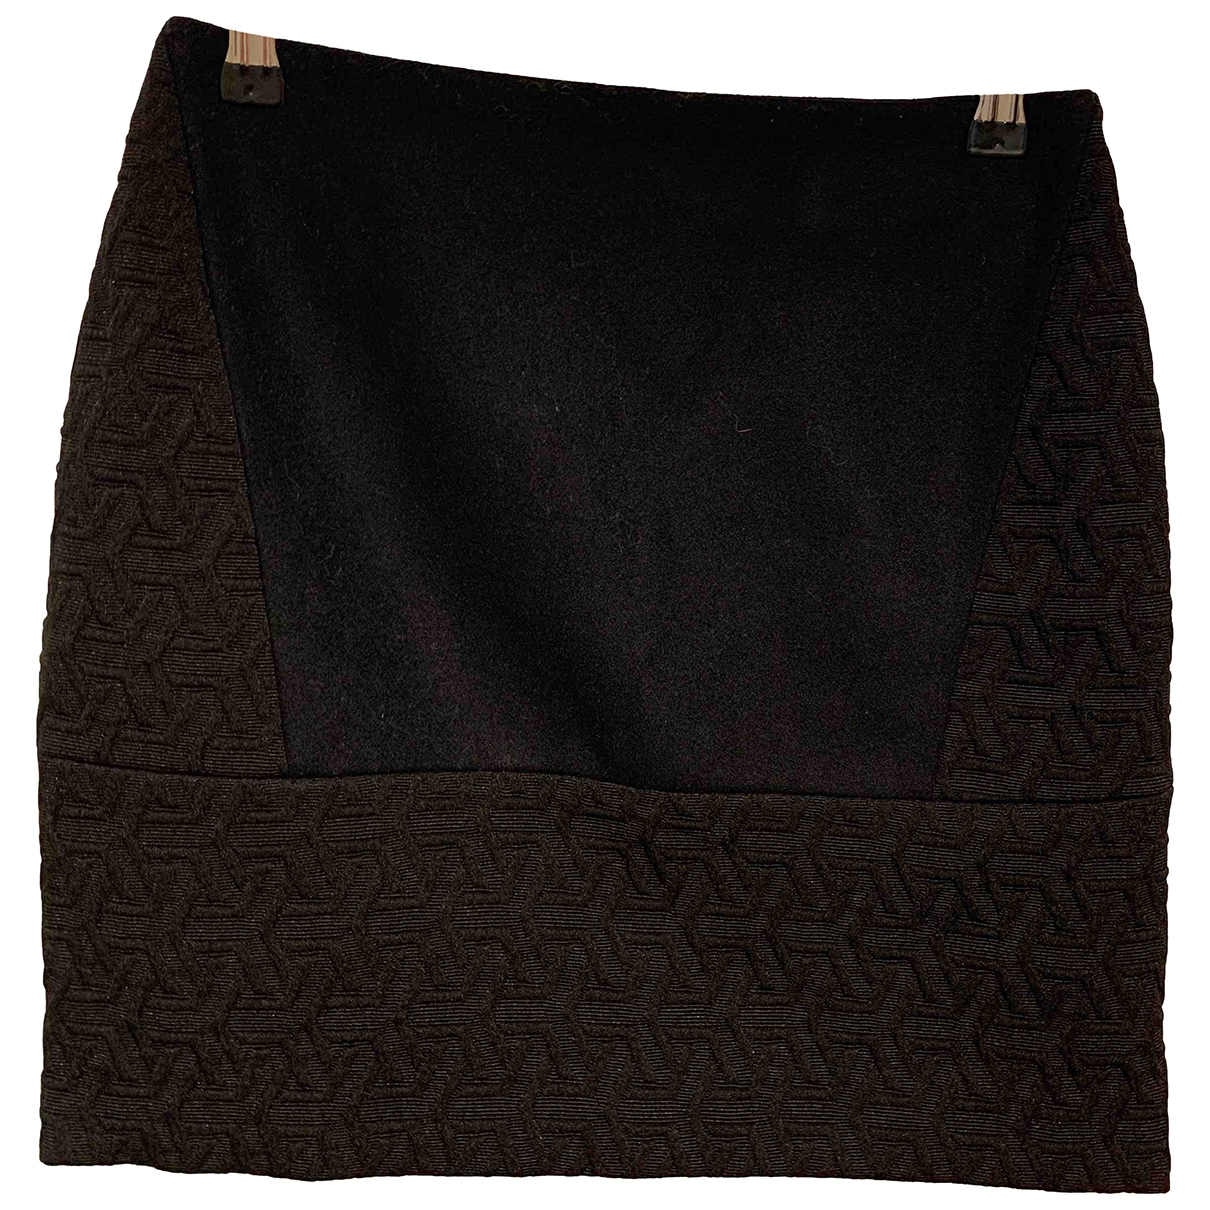 Sandro \N Black Cotton skirt for Women 6 UK